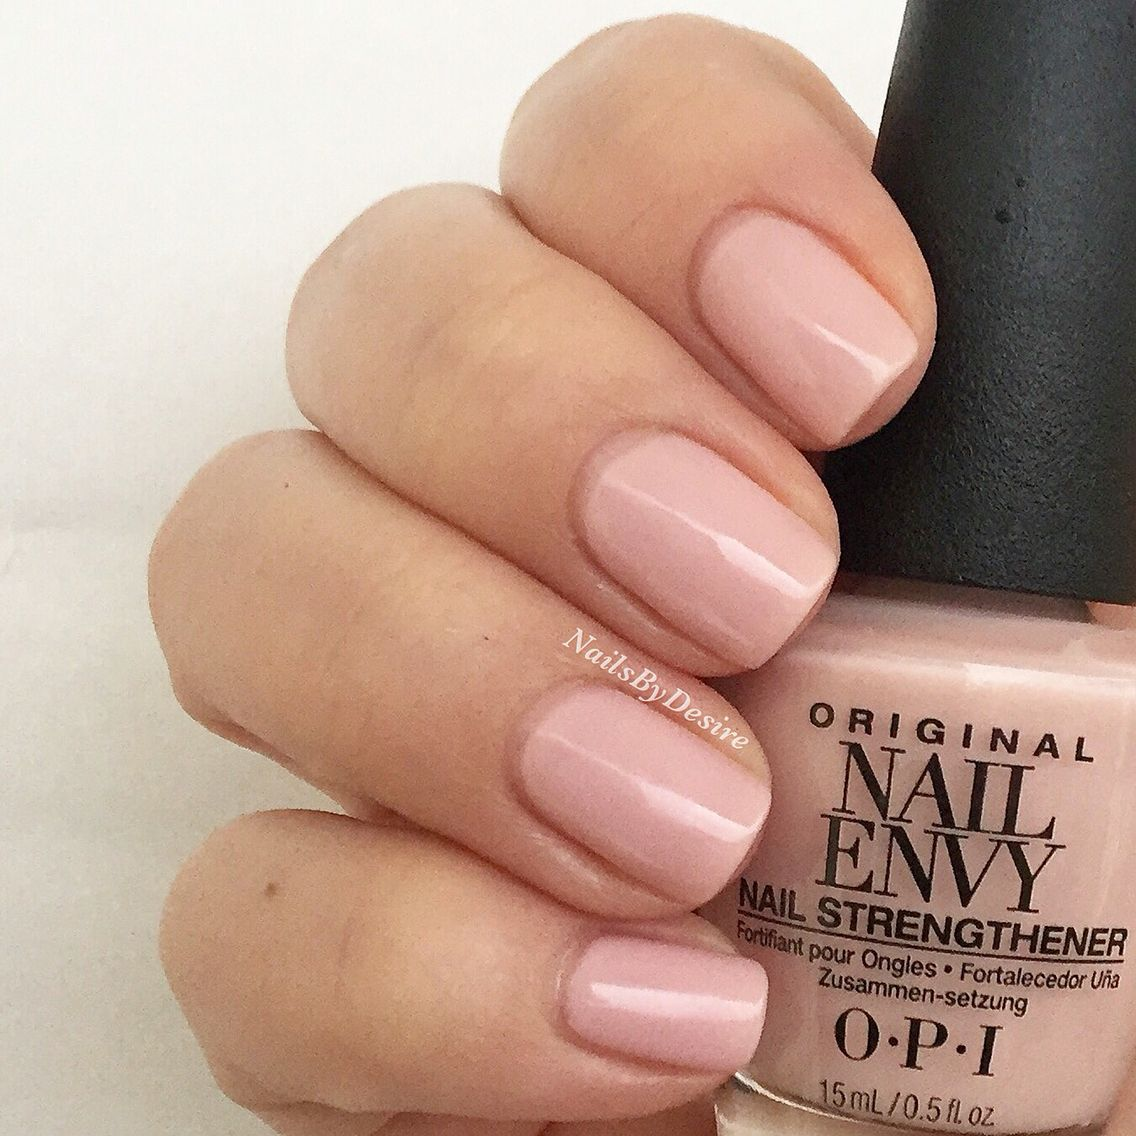 Opi - Nail Envy Bubble Bath | Fanboard | Pinterest | Opi nail envy ...